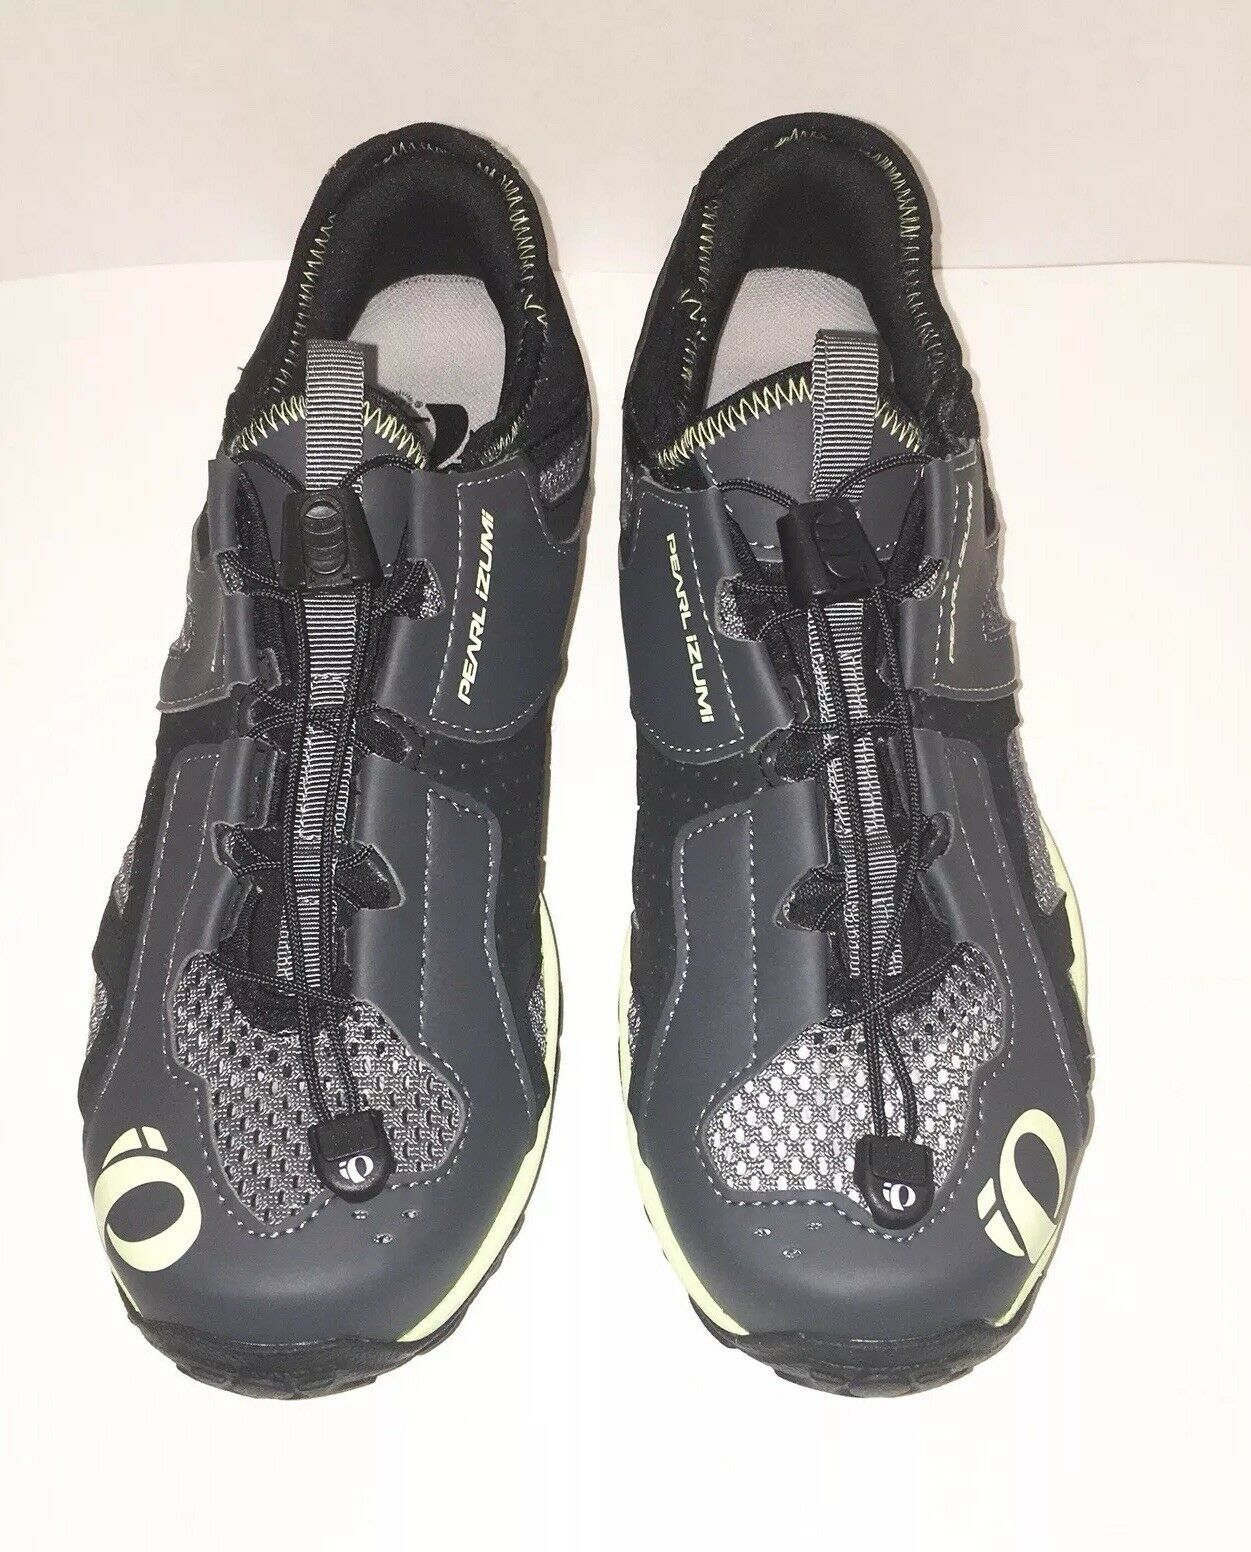 Pearl Izumi Damens Sz Eur 43 X-Alp Drift III Mountain Bike Cycling Schuhes US 10.8